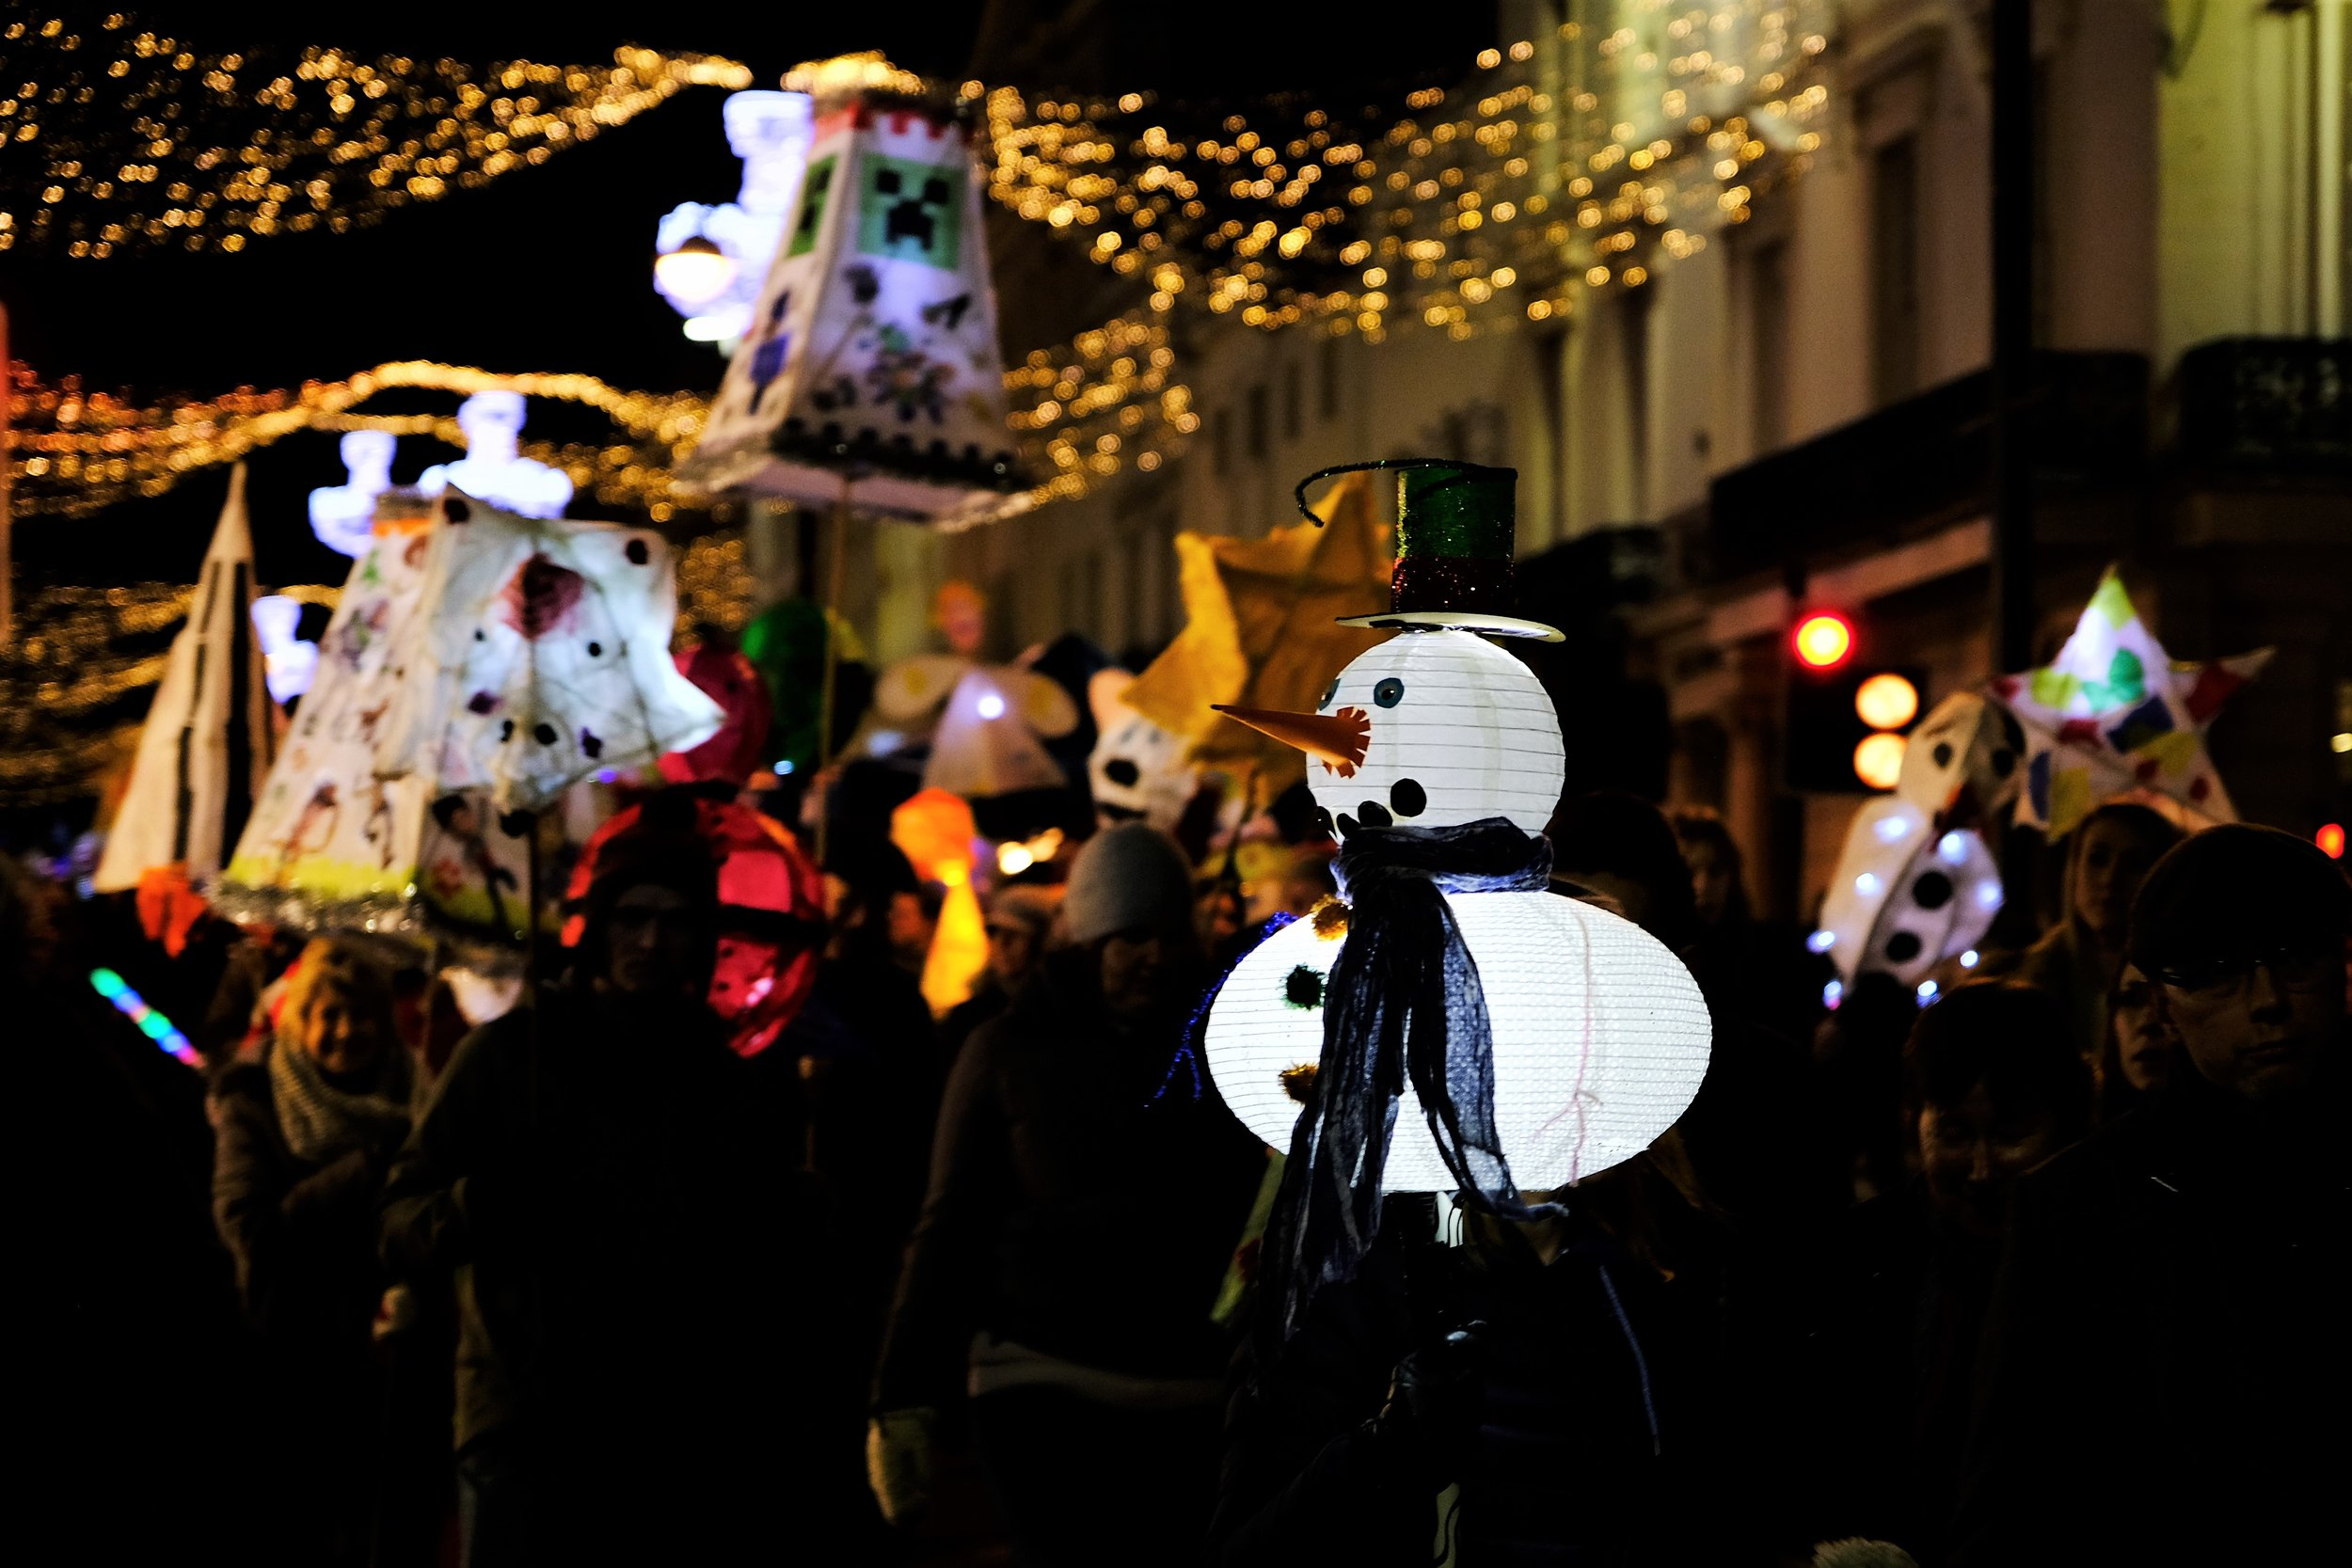 Leamington Spa Event photographer - town carnival leamington lantern parade snowman warwickshire.JPG